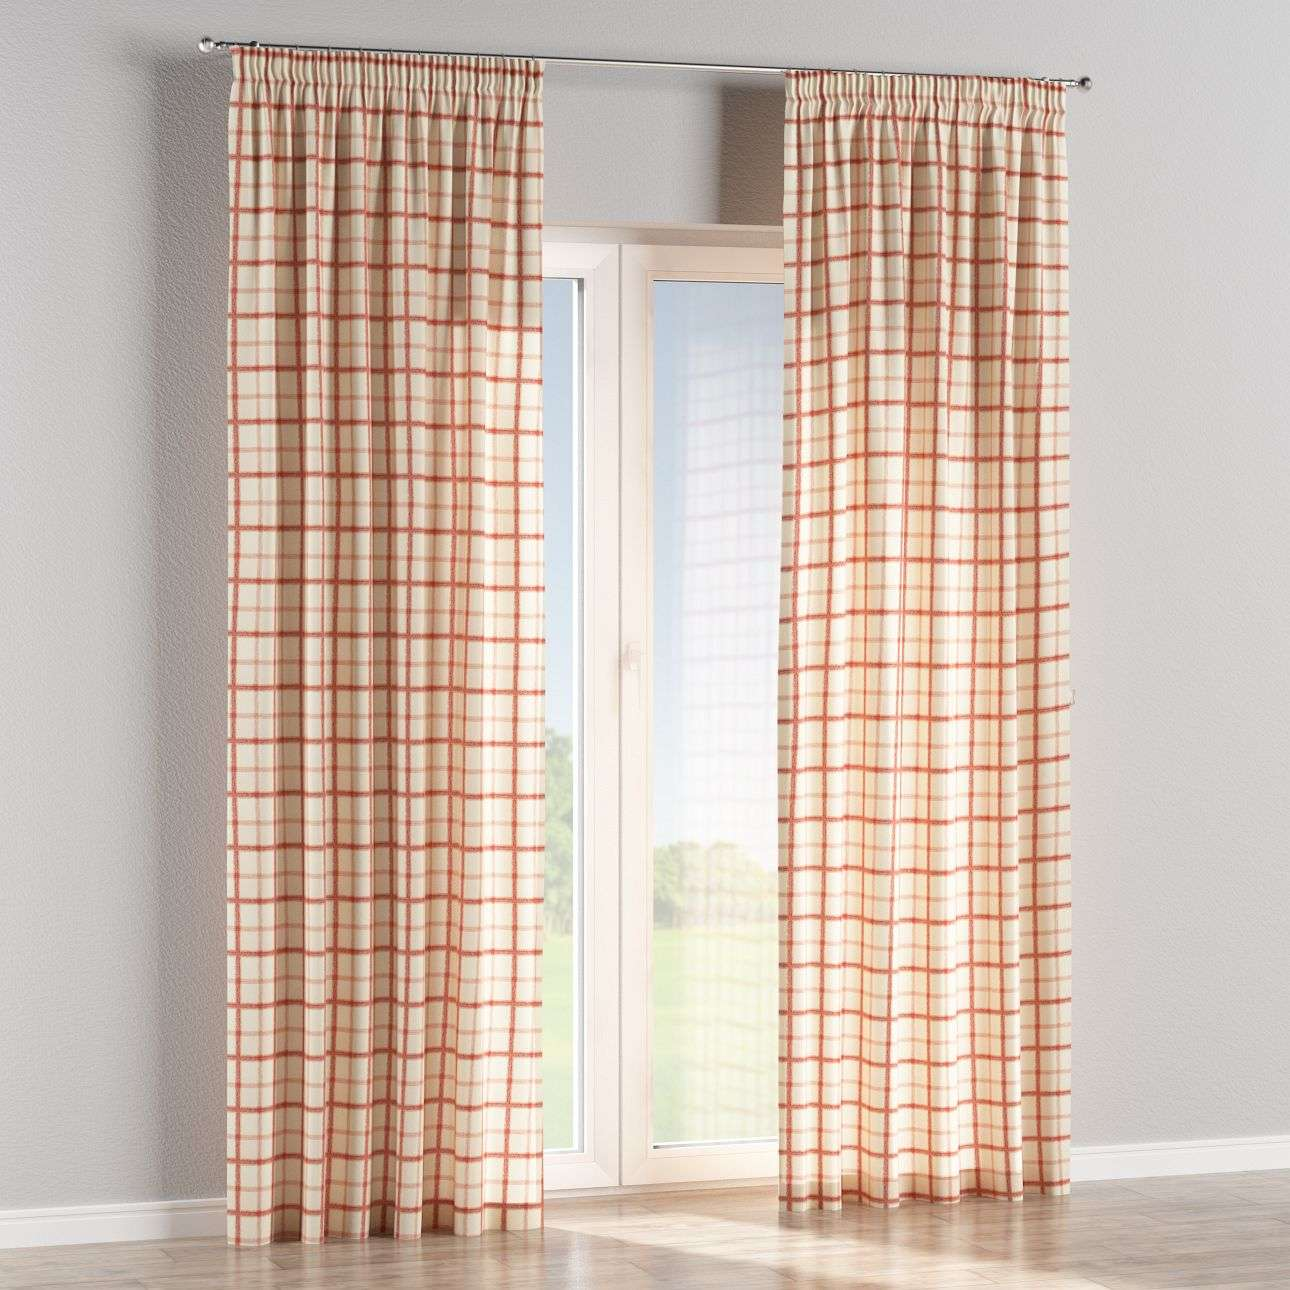 Pencil pleat curtains 130 x 260 cm (51 x 102 inch) in collection Avinon, fabric: 131-15